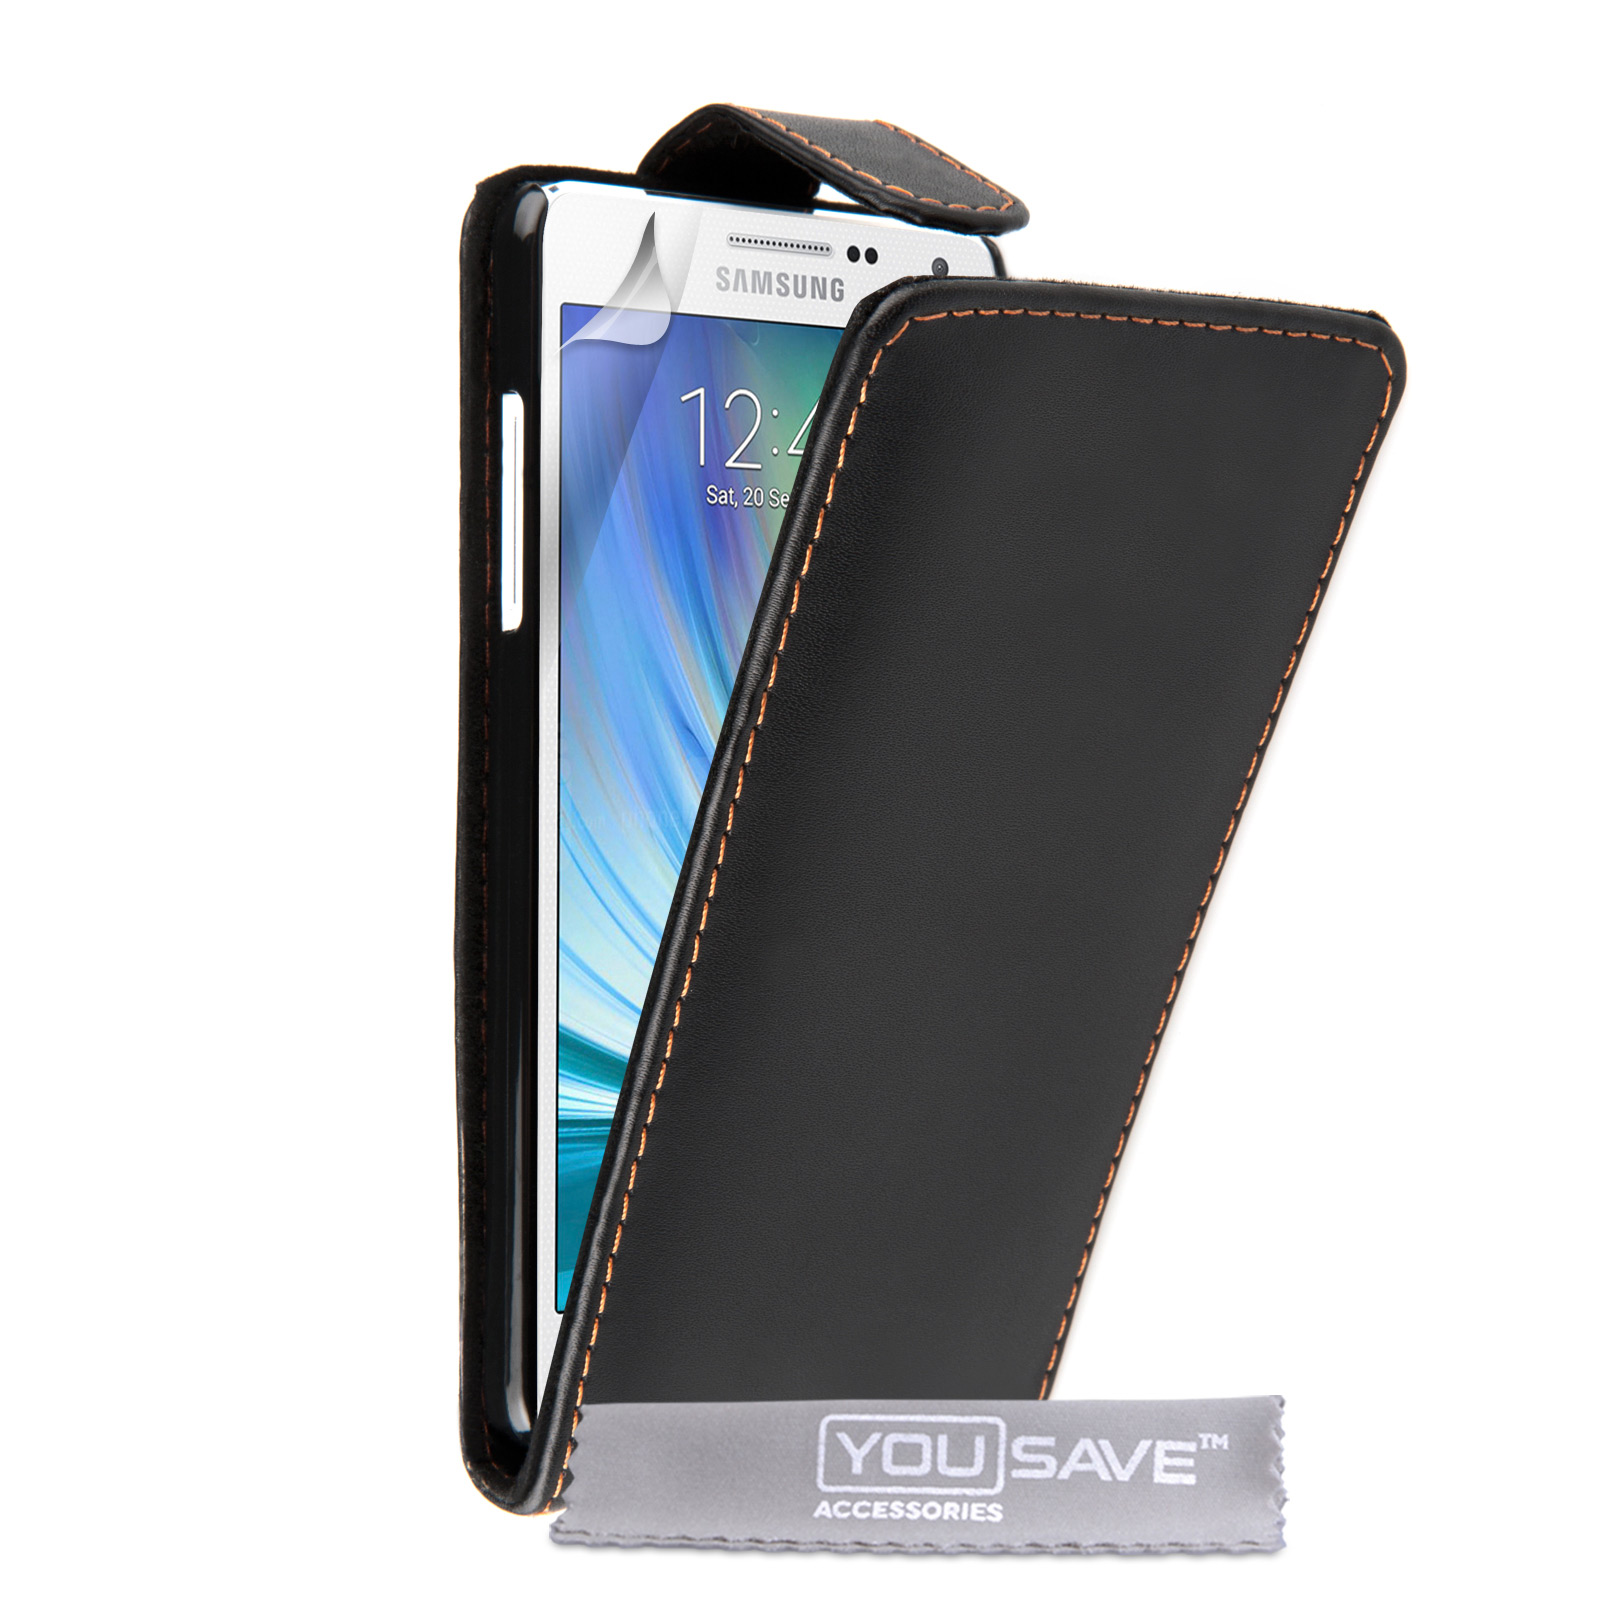 YouSave Accessories Samsung Galaxy A5 Leather-Effect Flip Case - Black